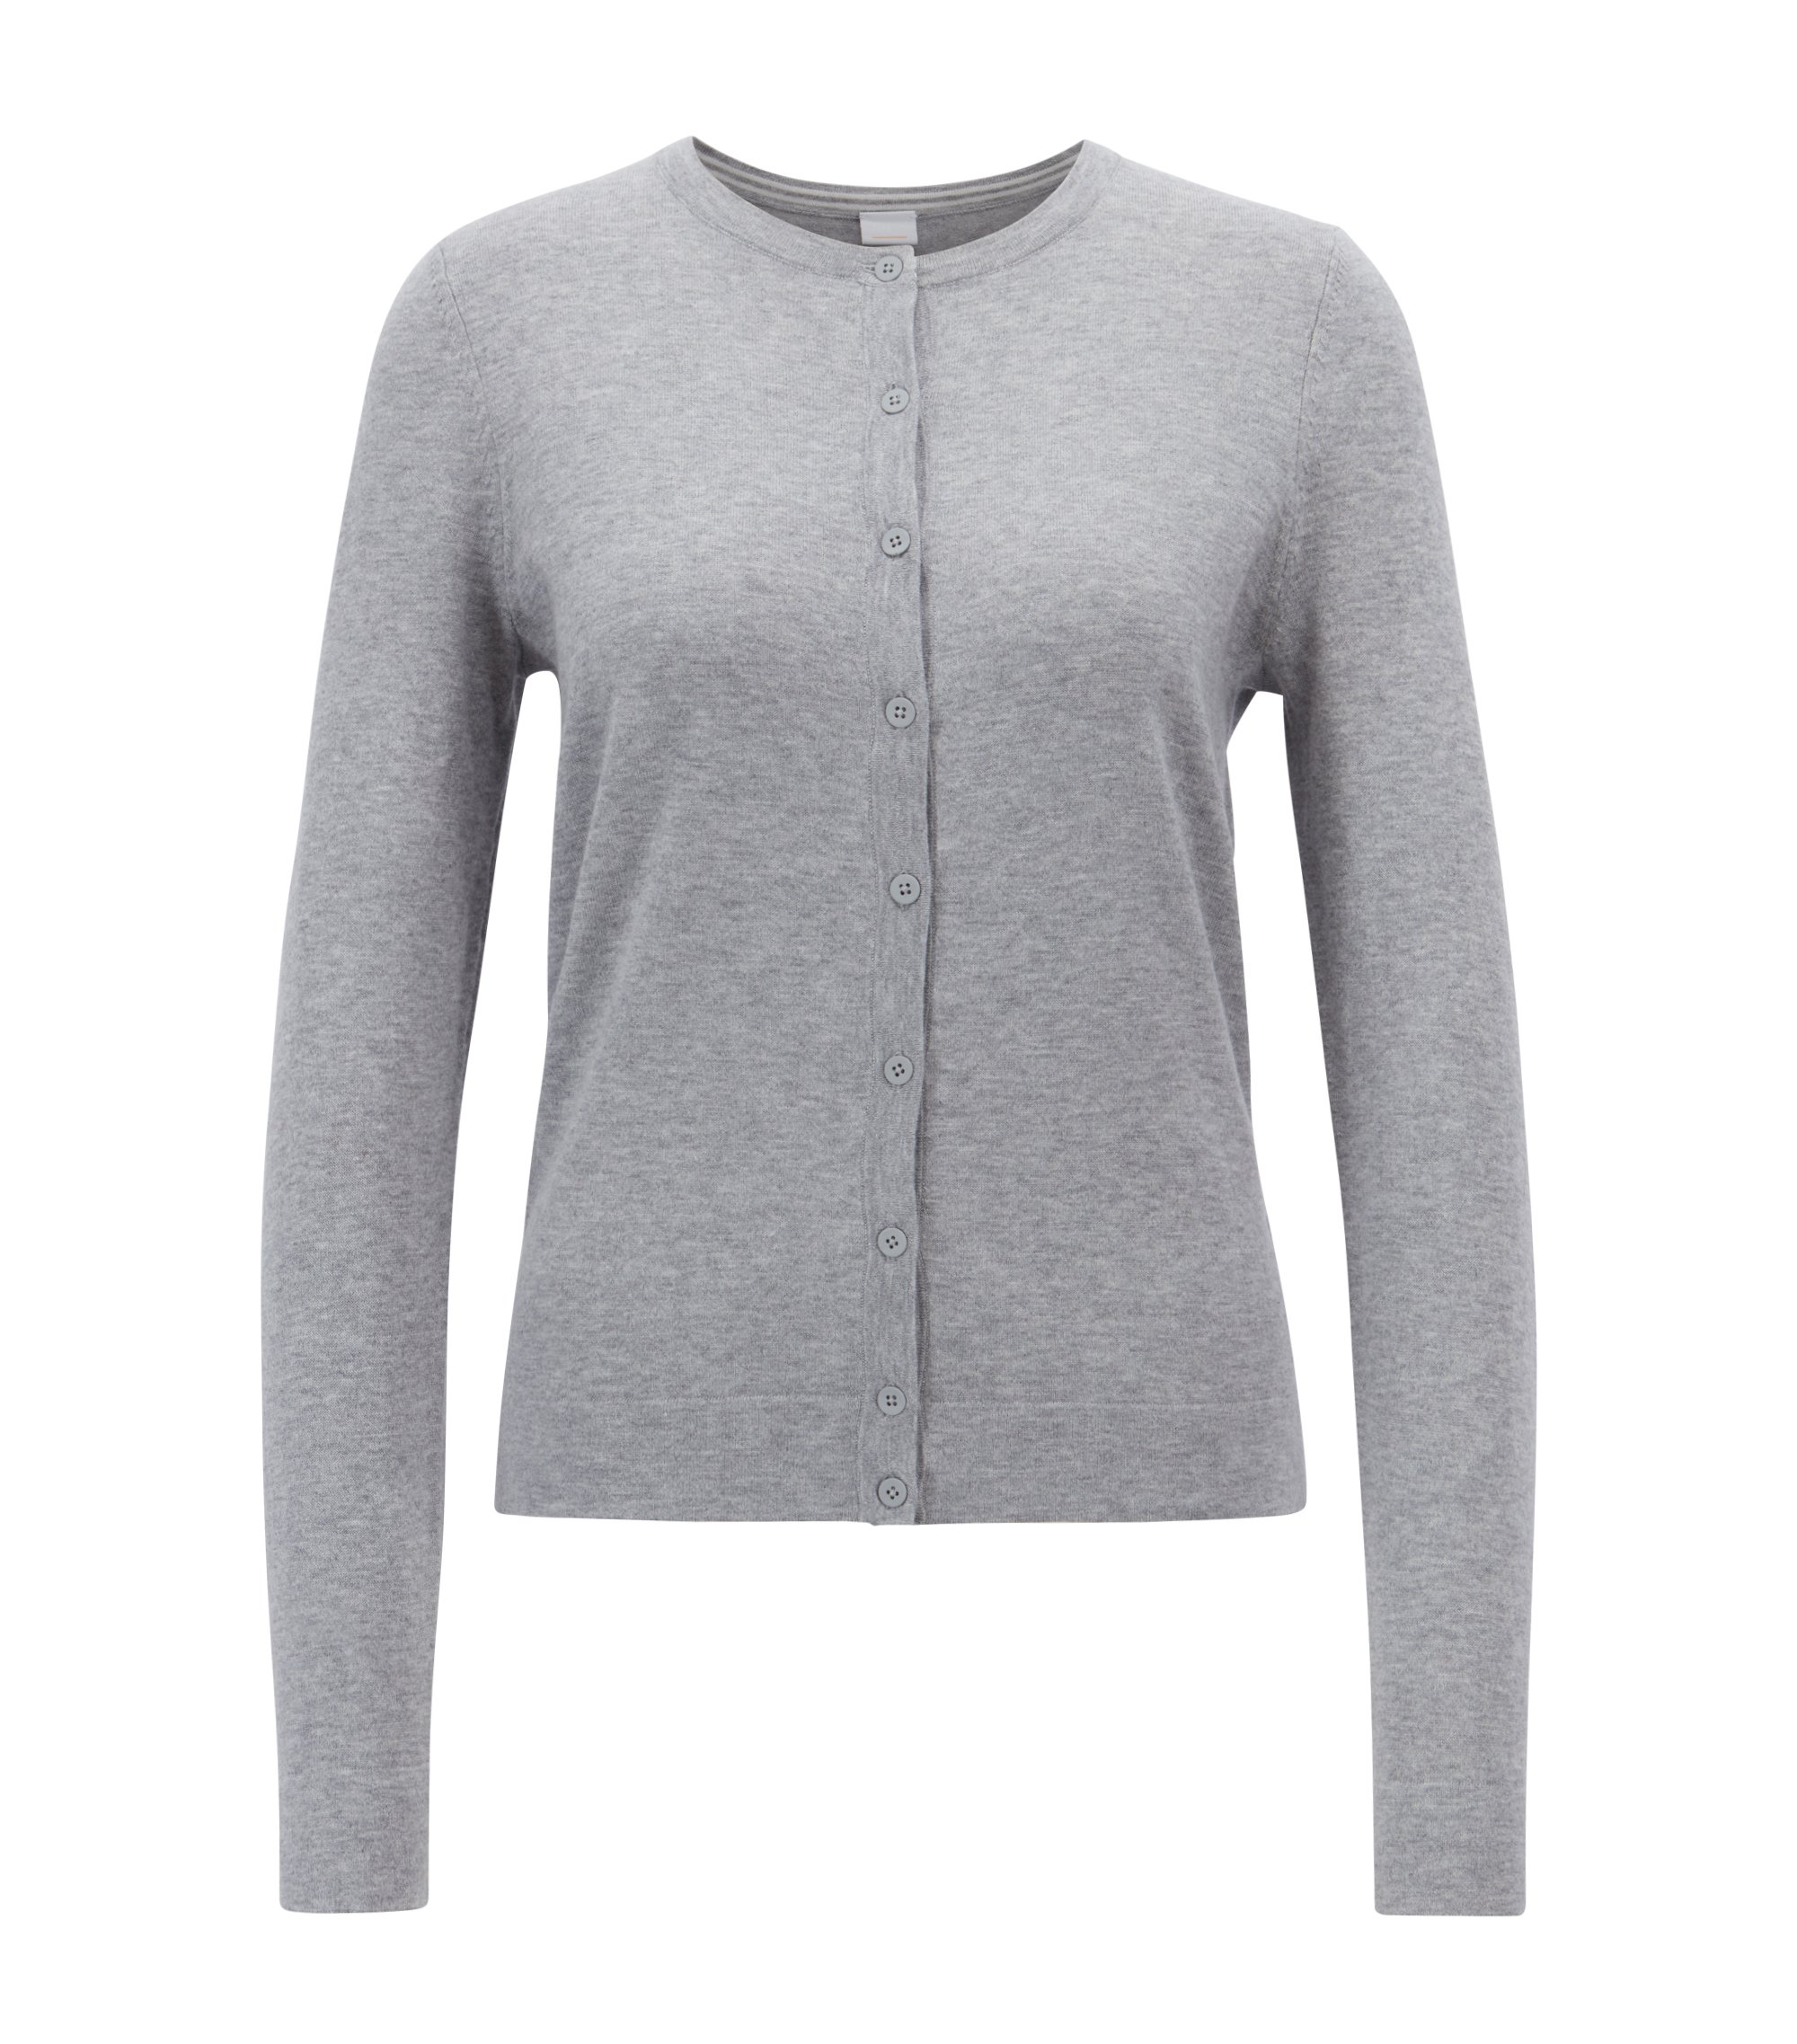 Cotton-blend crew-neck cardigan with cashmere and silk, Silver